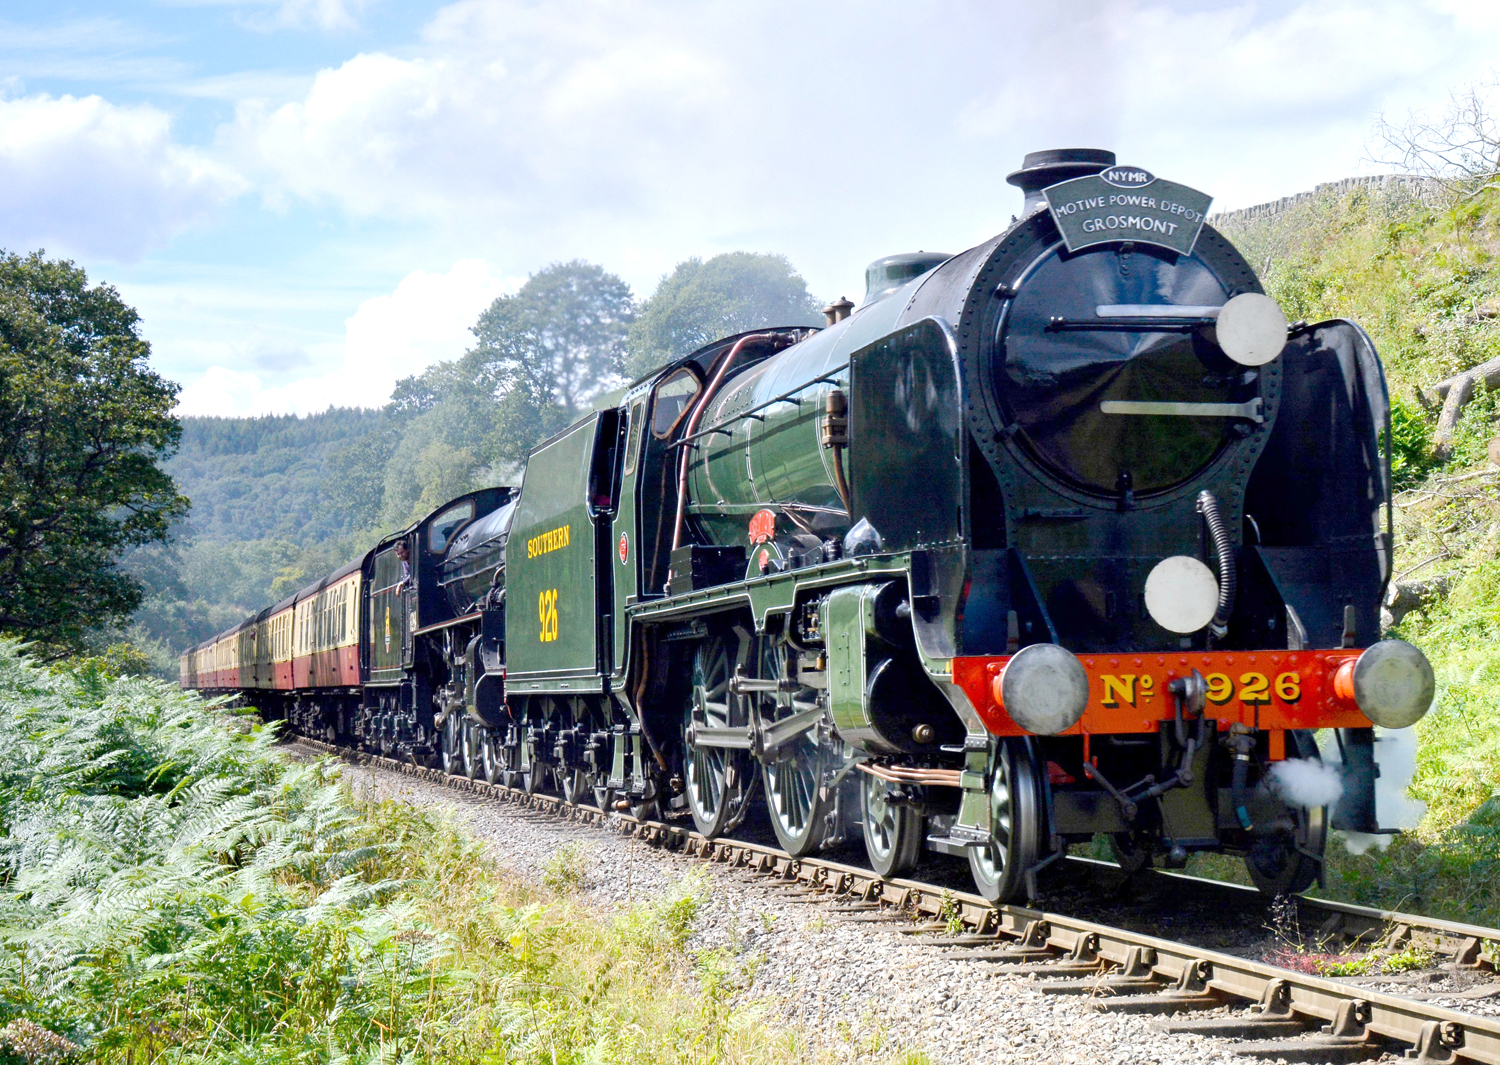 Trip on the Yorkshire Moors by Steam Engine